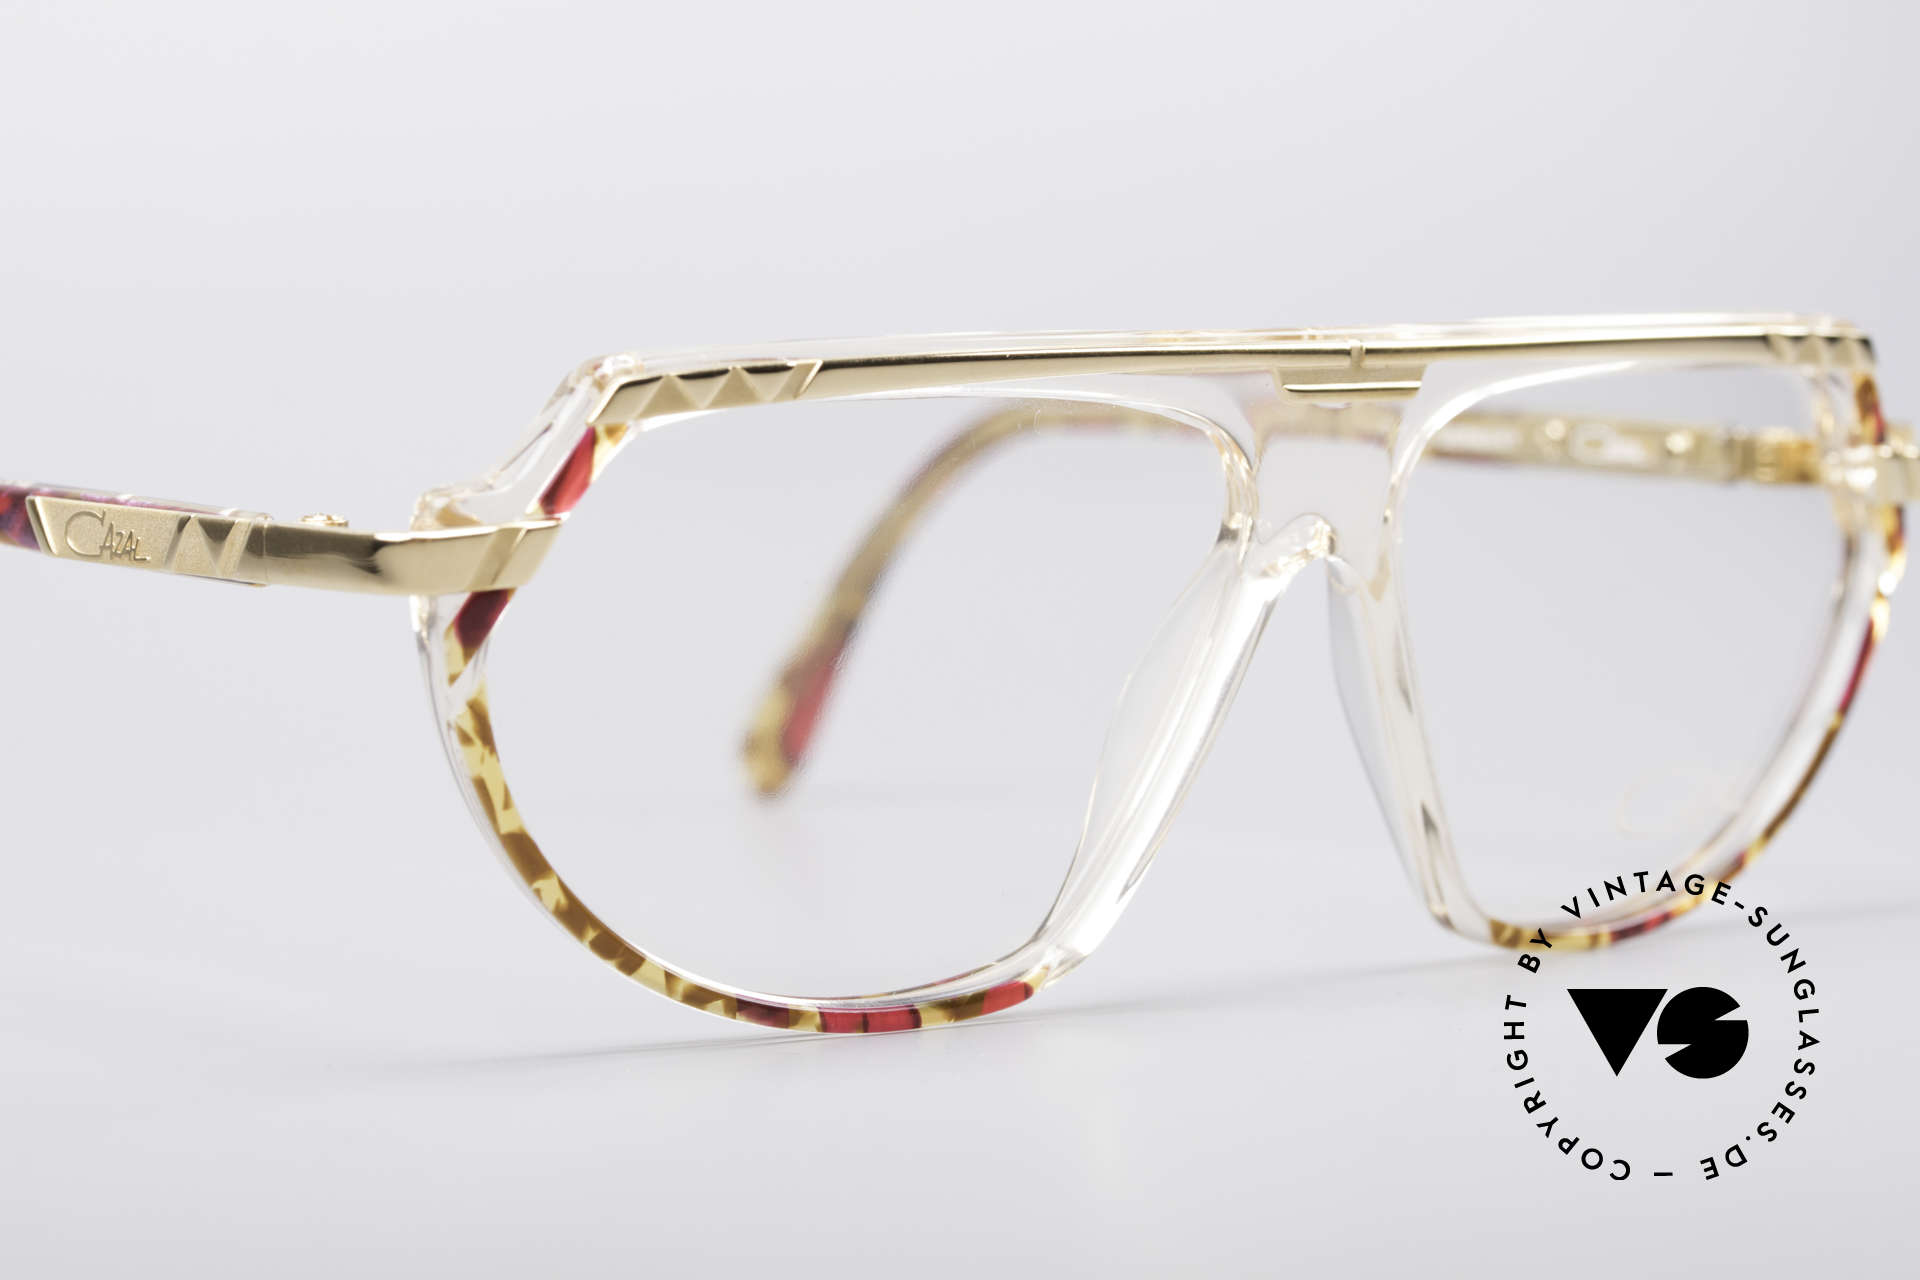 Cazal 344 Old School Crystal Glasses, NO RETRO EYEWEAR, but an old CAZAL ORIGINAL!, Made for Women